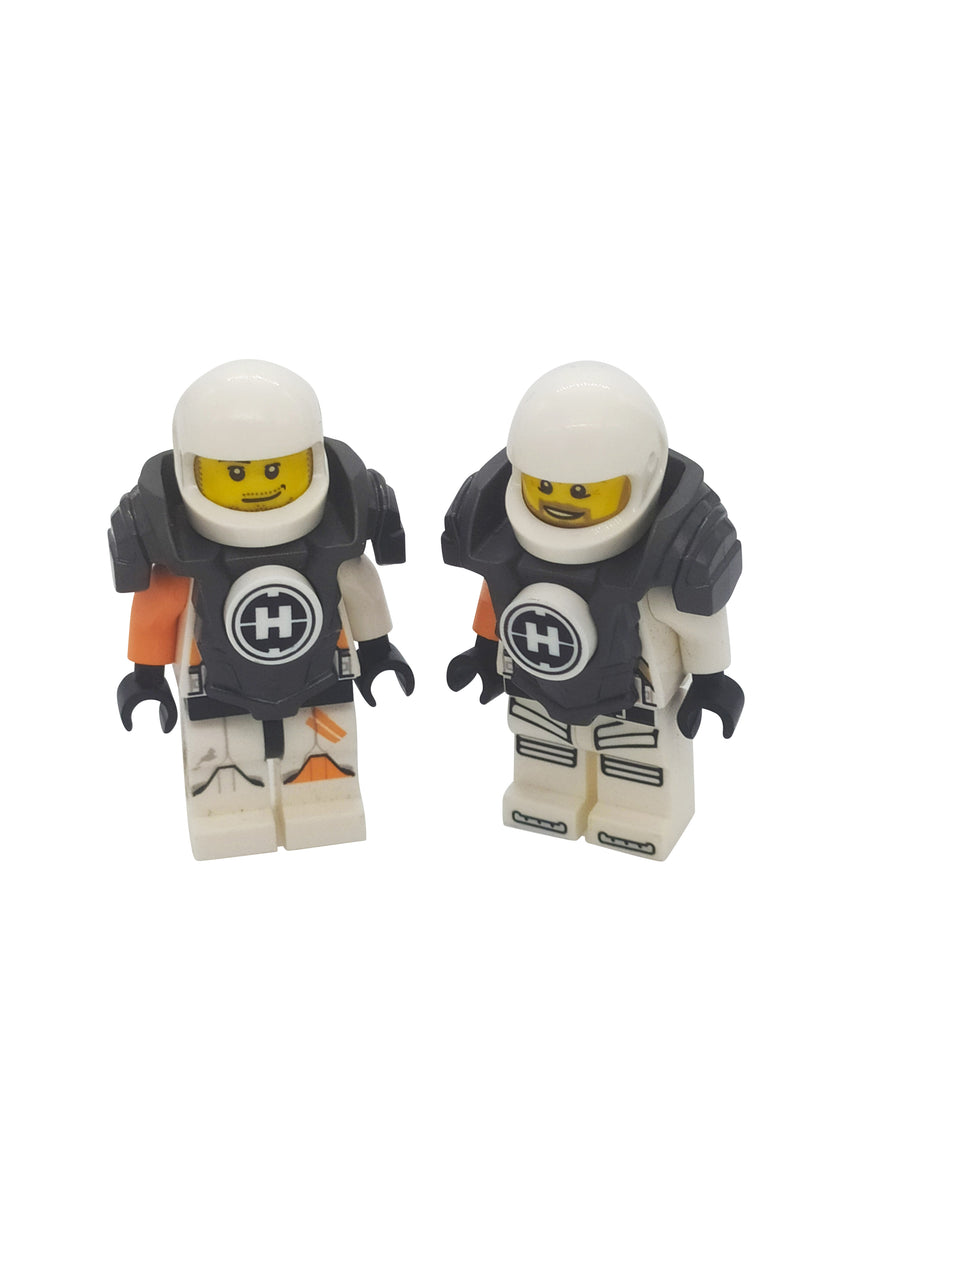 2 lot of space warriors,mini-figure with special suits - lego